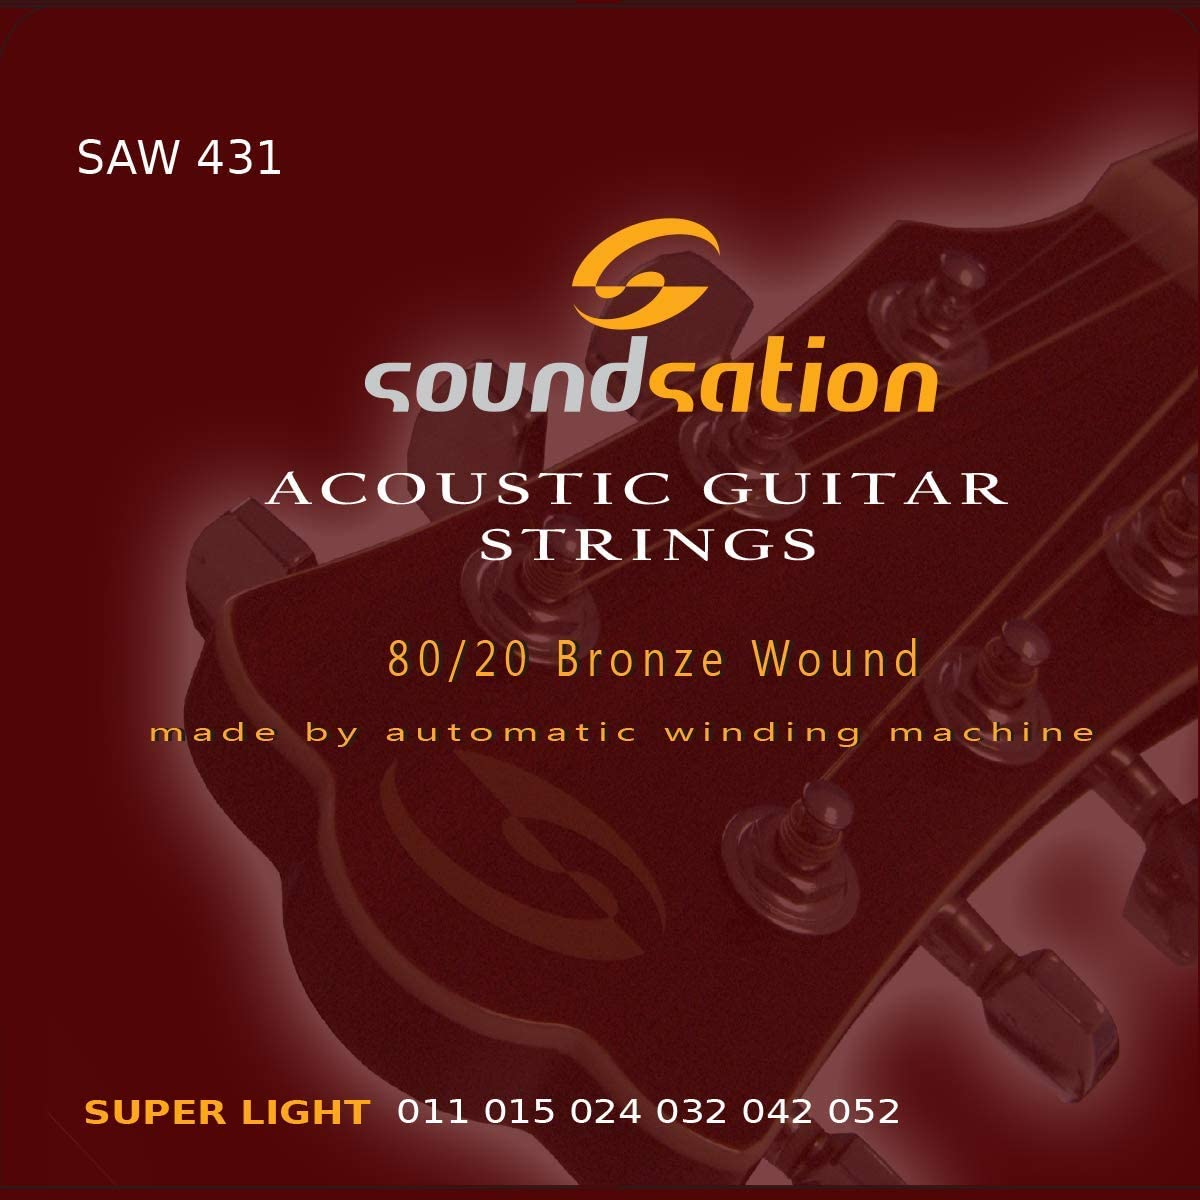 Cuerdas para guitarra acústica SOUNDSATION SAW431 tensión (11-52) super light